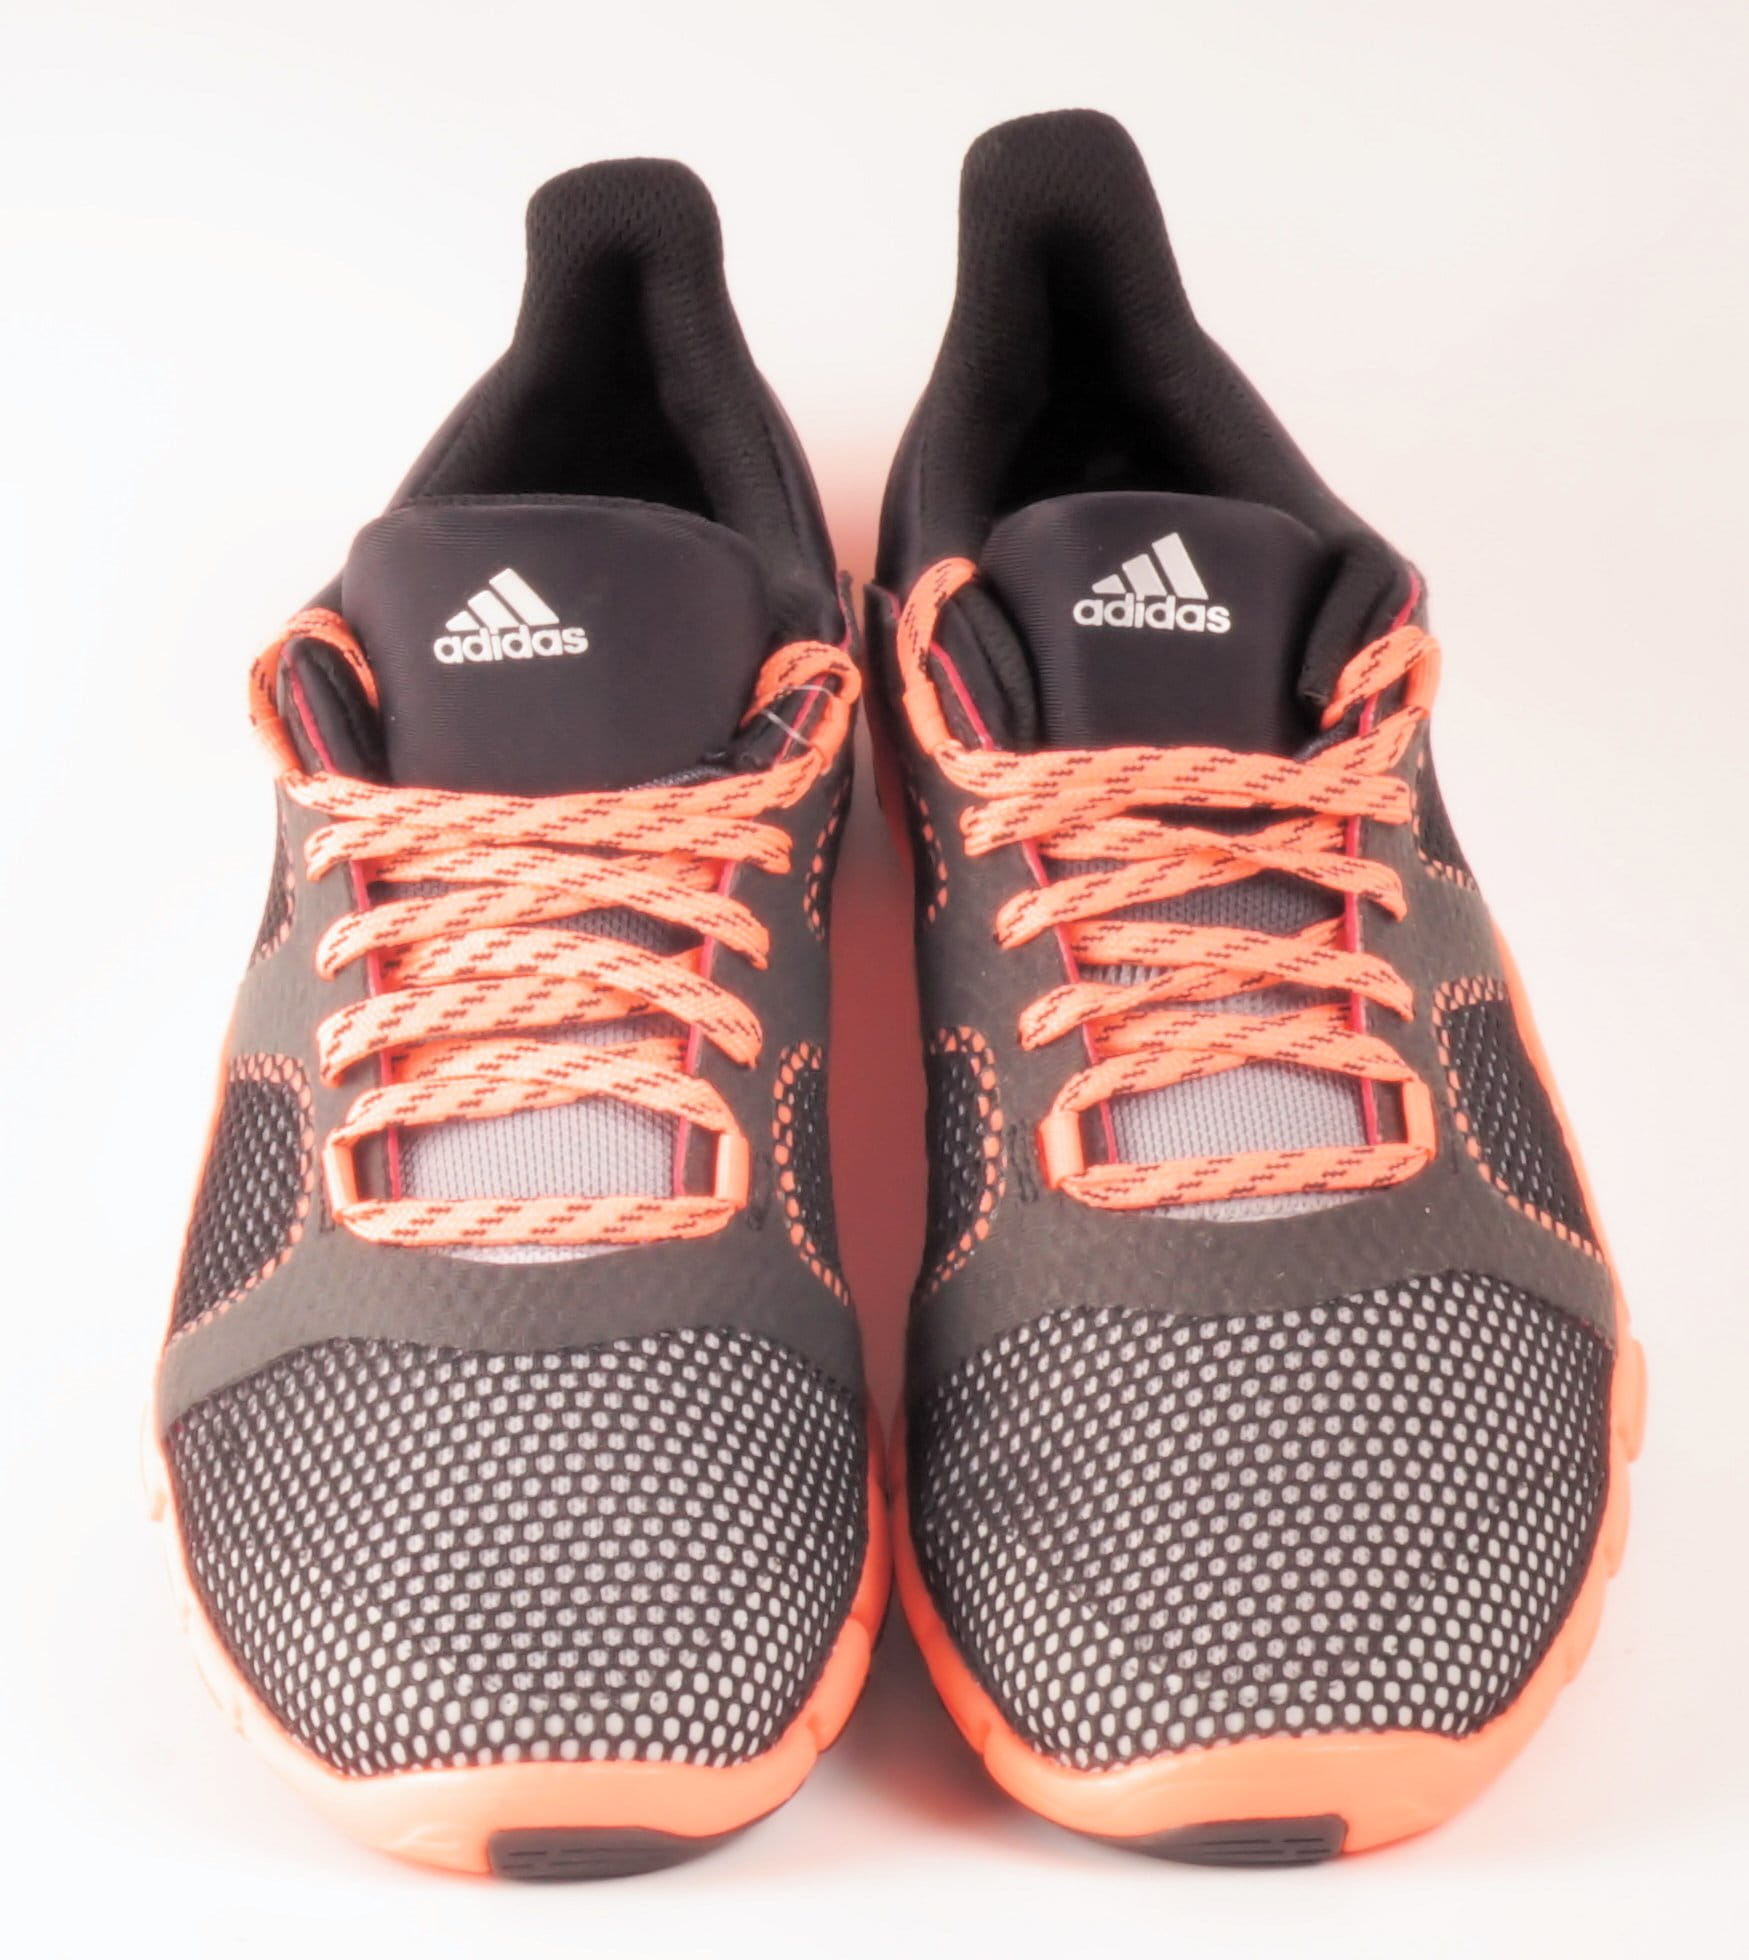 info for fbf37 aa9bb ADIDAS OBUWIE d.ADIPURE FLEX AF5875 r. 38 - VabiMax Outlet